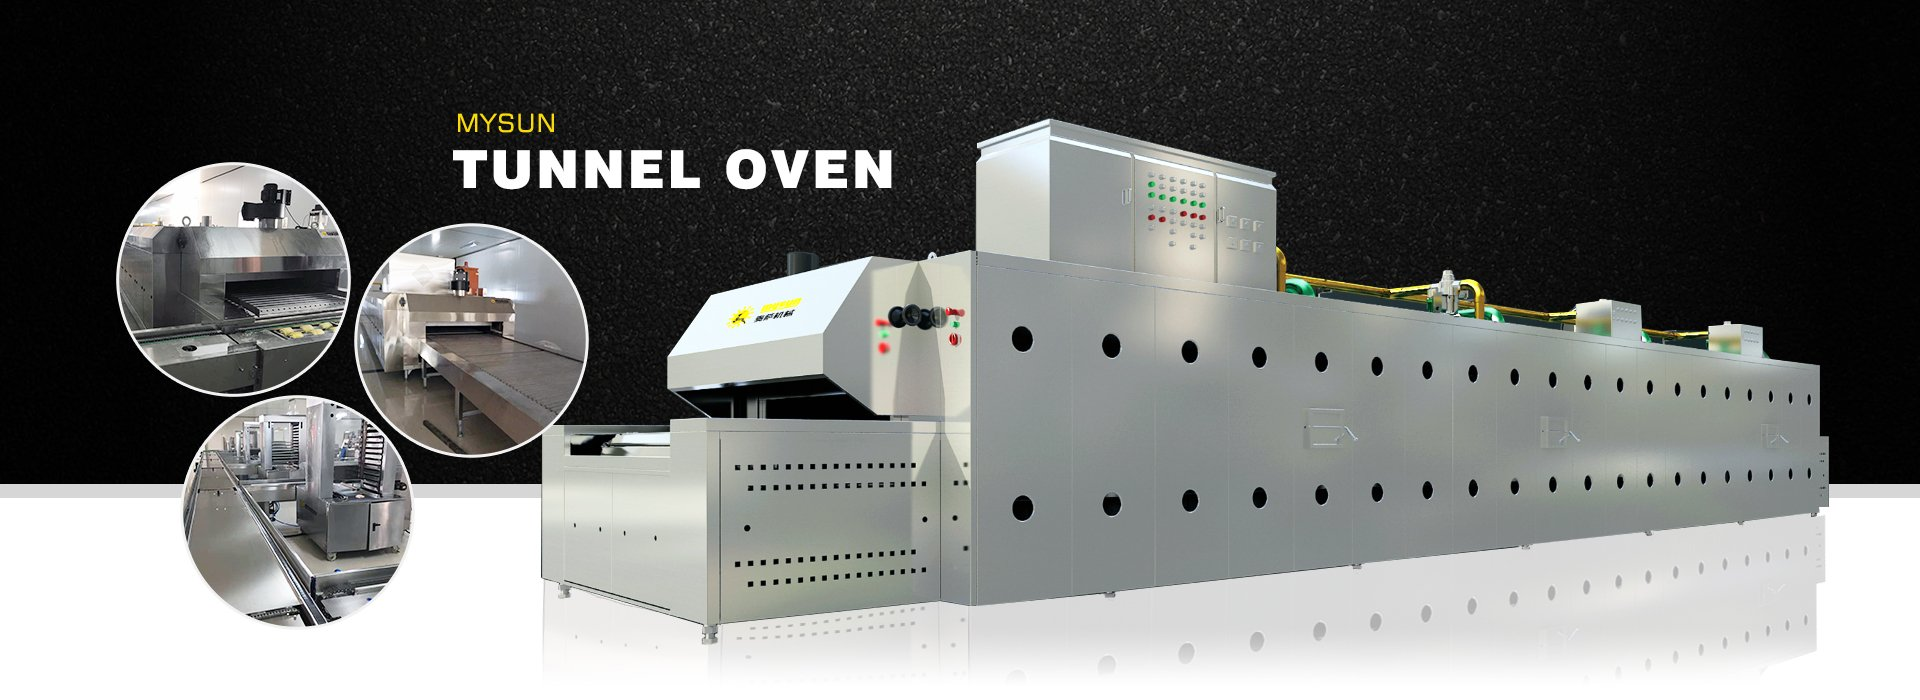 Tunnel Oven